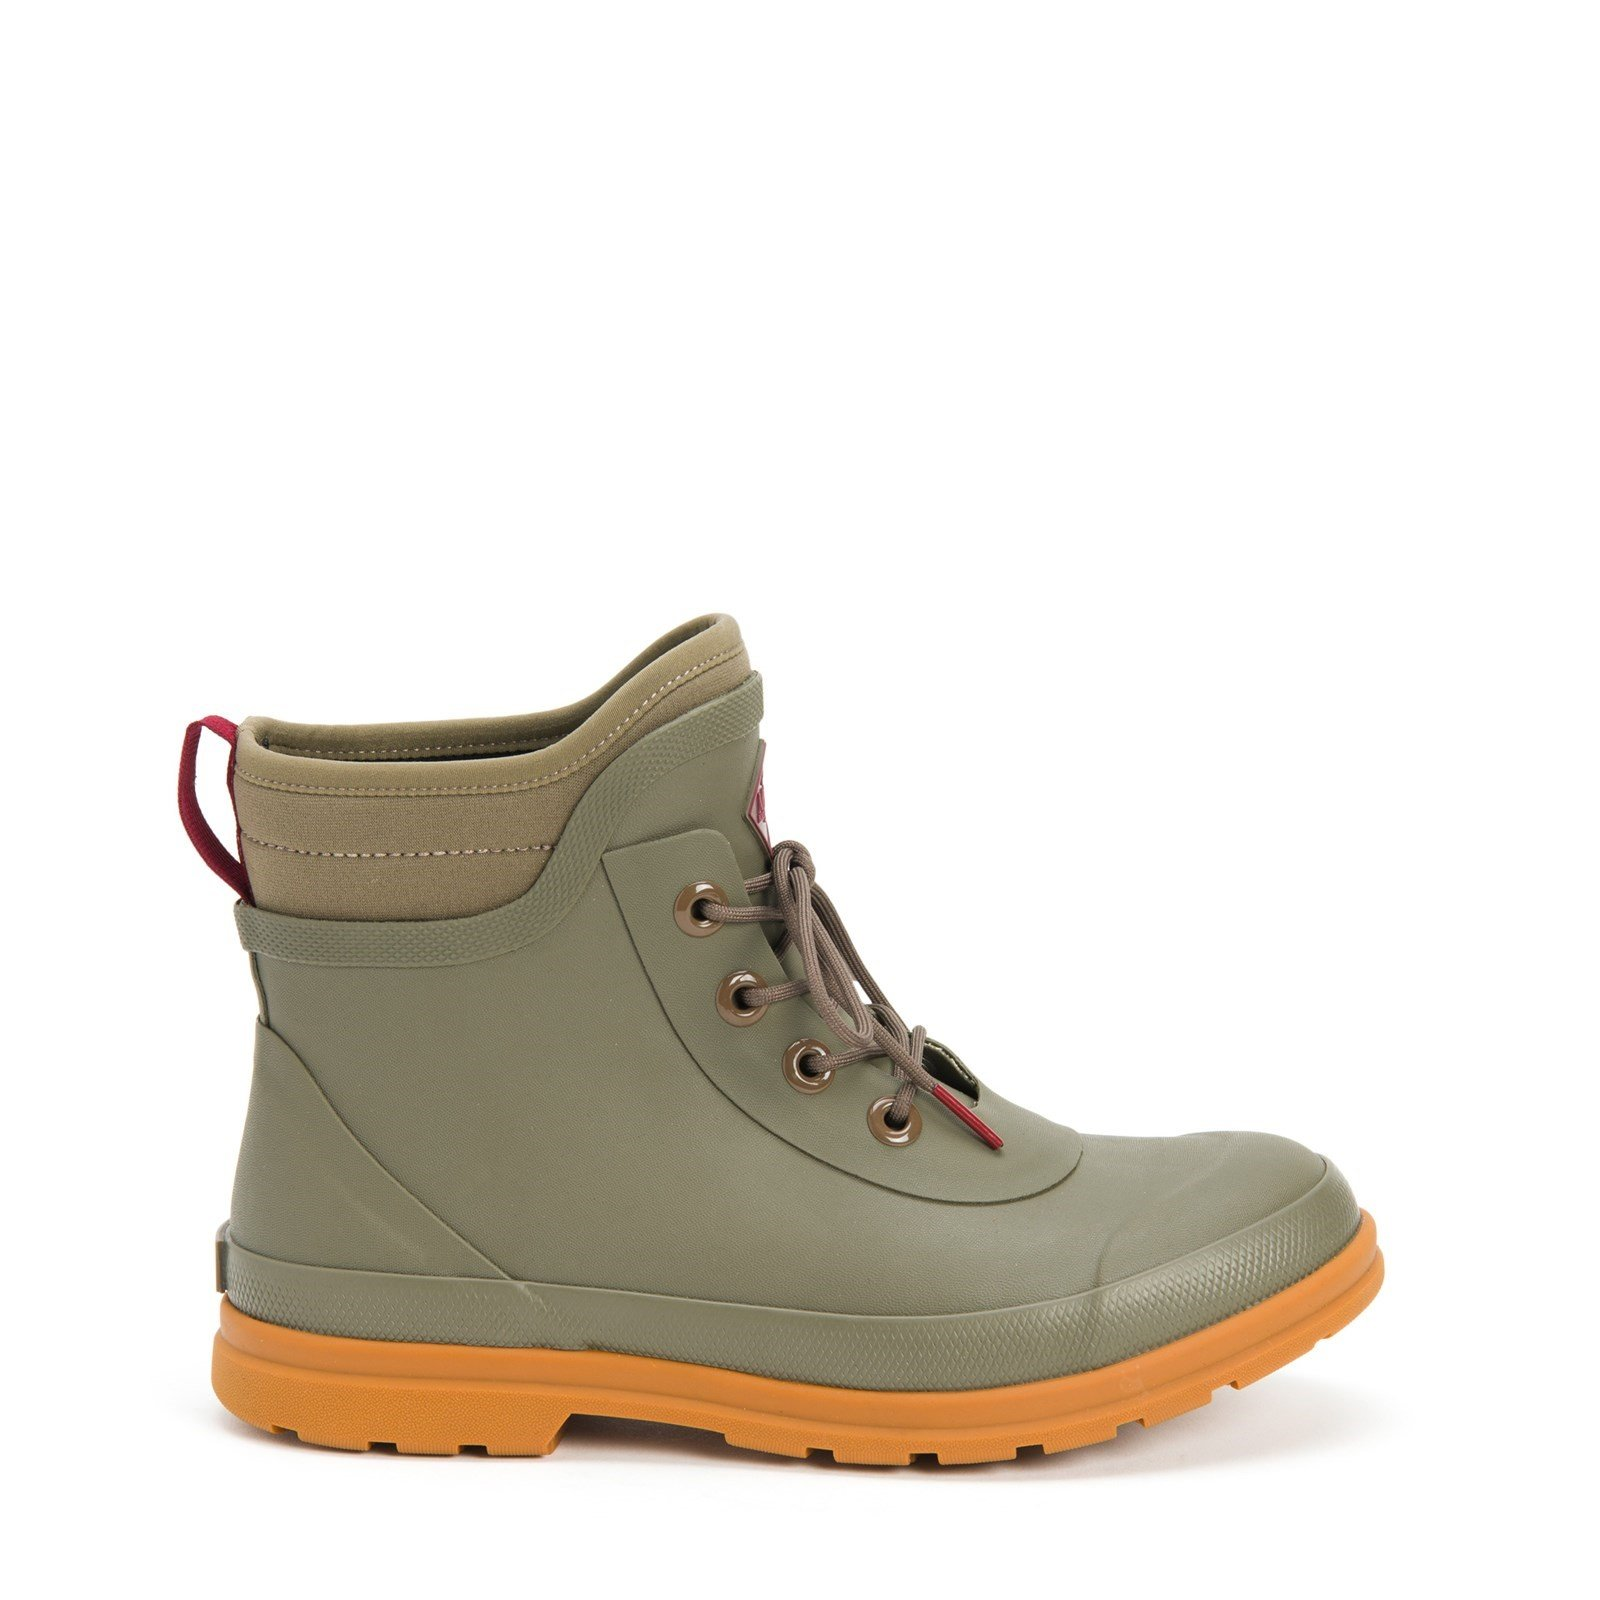 Muck Boots Women's Originals Lace Up Ankle Boot Various Colours 30079 - Taupe 3